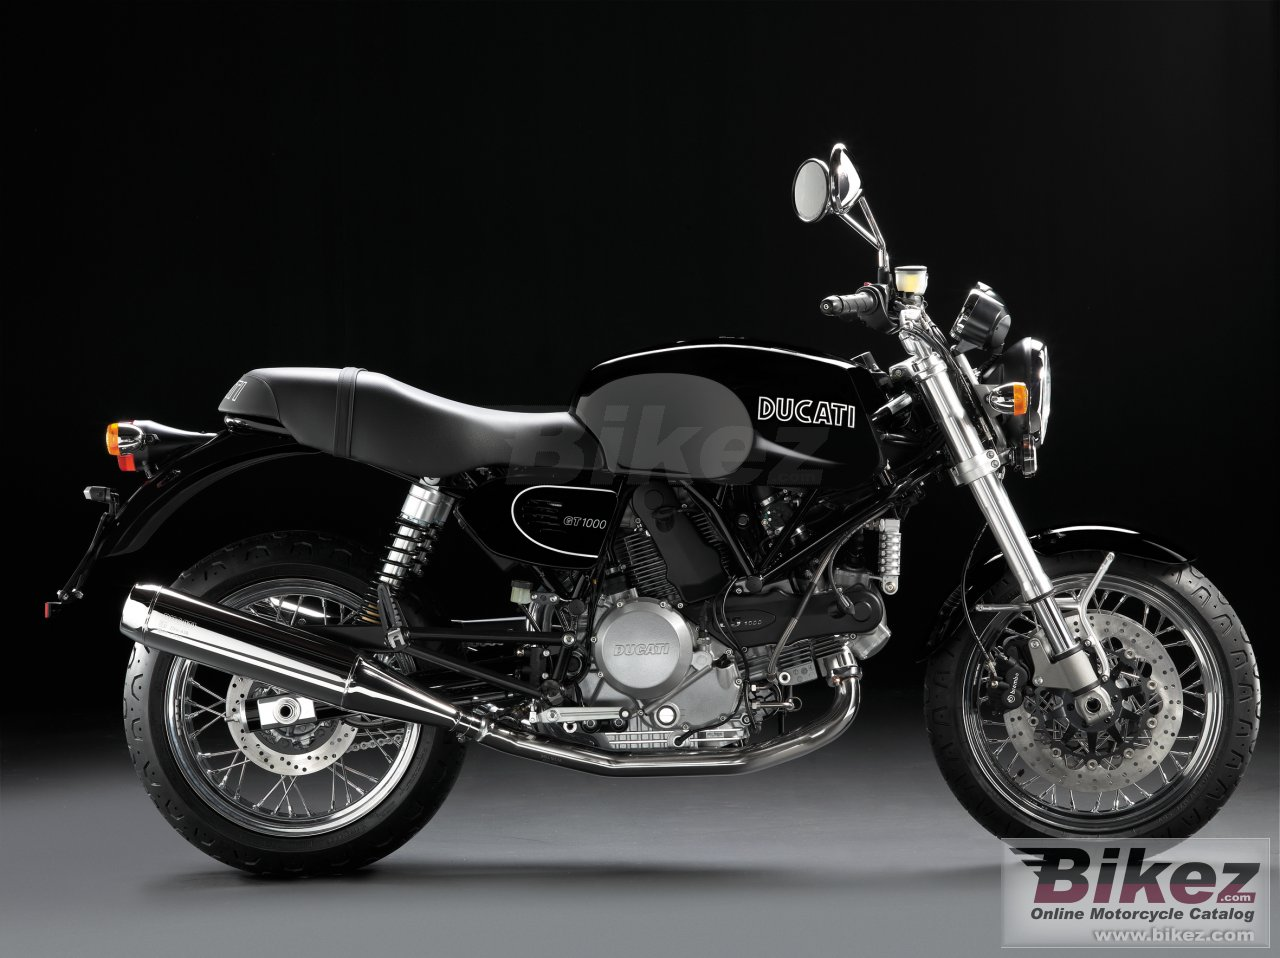 Big Ducati sportclassic gt 1000 picture and wallpaper from Bikez.com